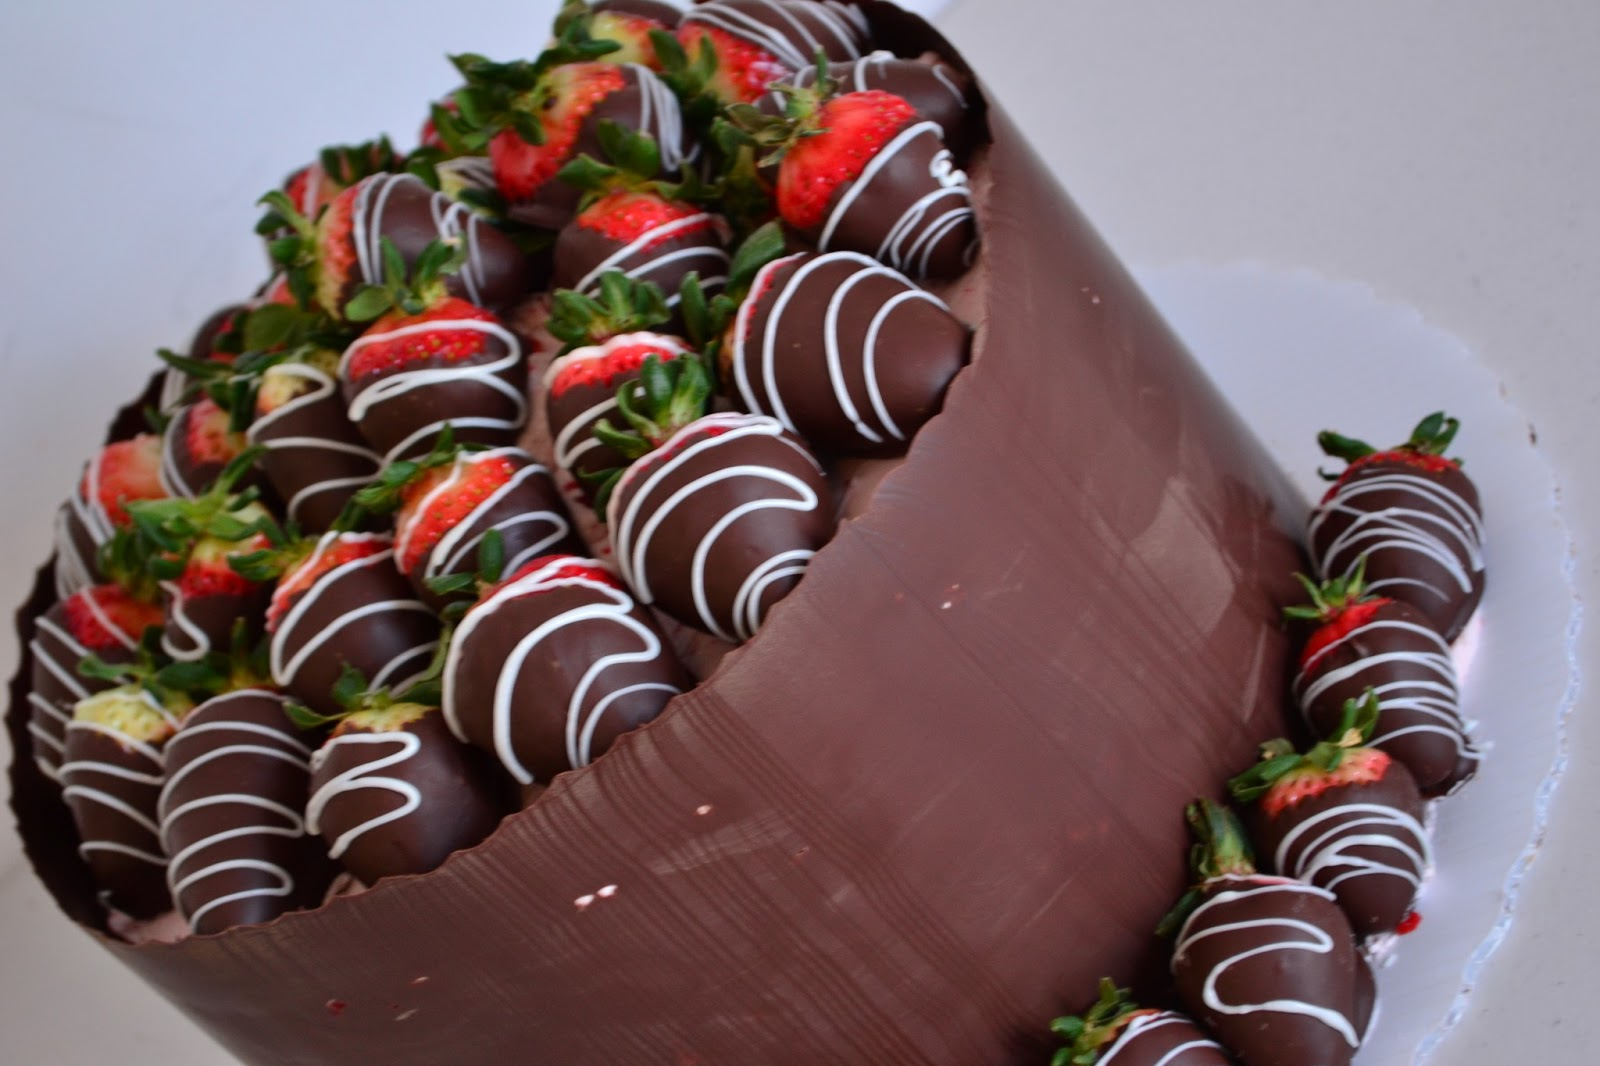 Oh, just put a cupcake in it....: Chocolate Covered Strawberry Cake...